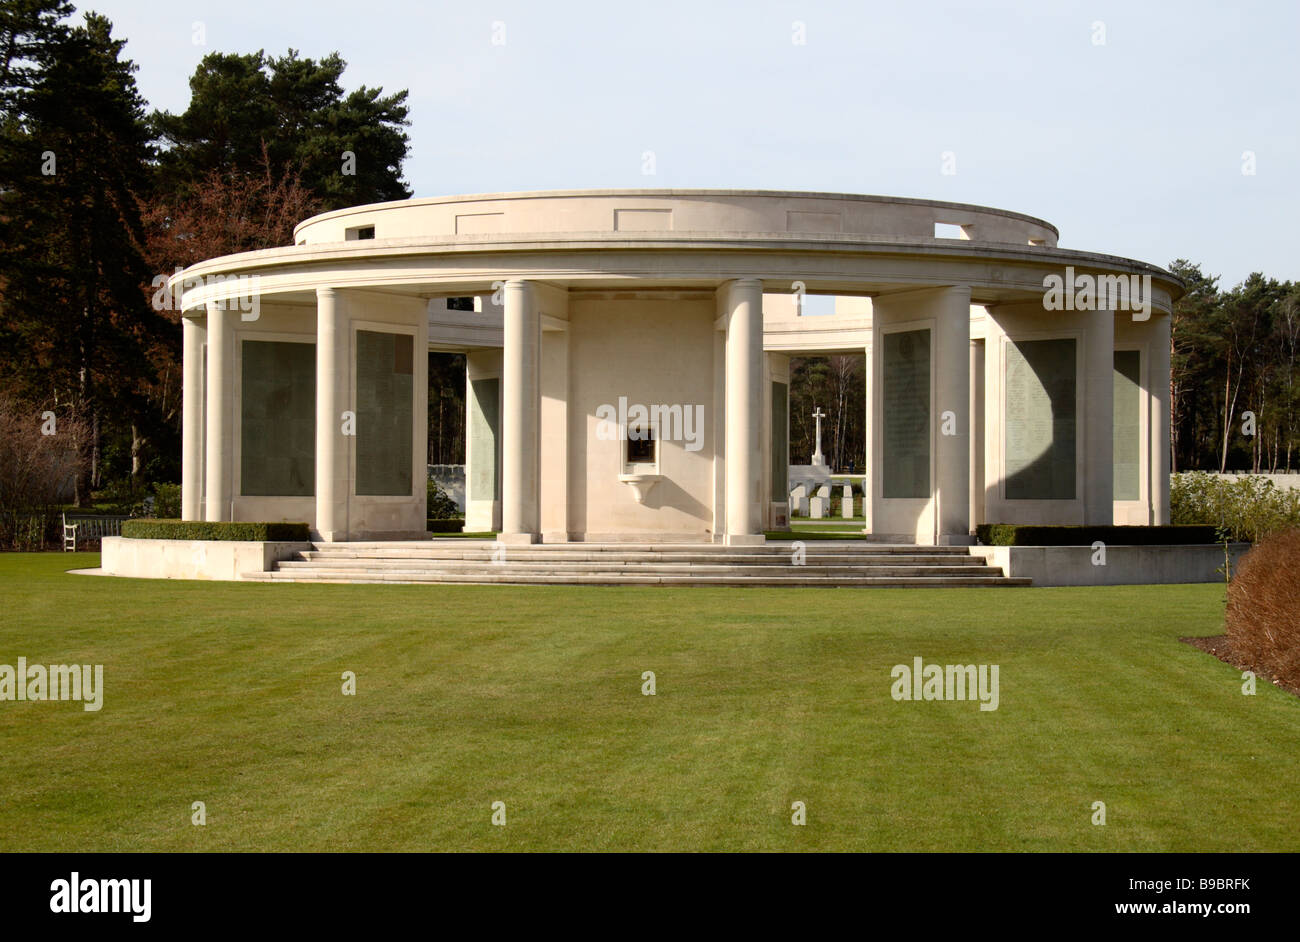 The Brookwood Memorial to the Missing, in the Brookwood Military Cemetery, Woking. - Stock Image